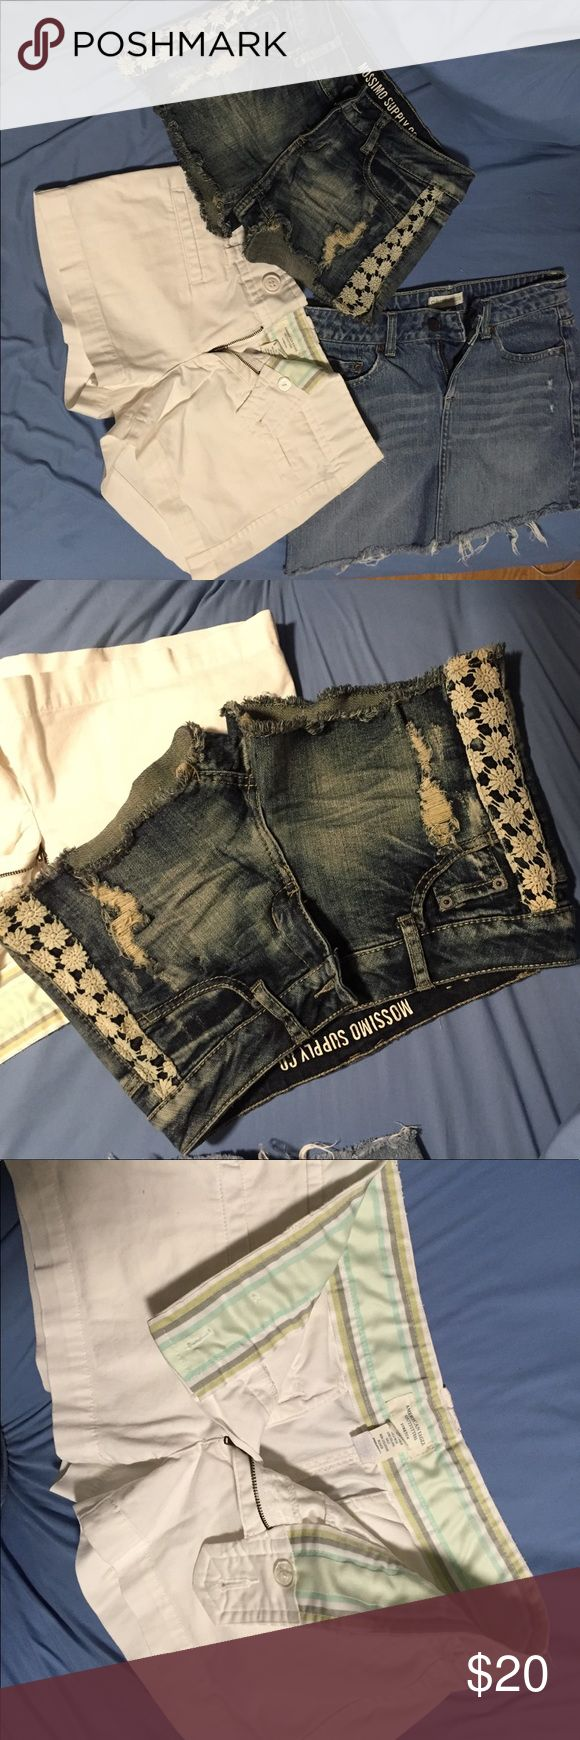 Bundle of 3-jean shorts, jean skirt, cotton shorts American Eagle white cotton shorts size 2. Massimo jean shorts size 5. Aeropostale jean skirt size 1/2. All in gently used condition American Eagle Outfitters Shorts Jean Shorts